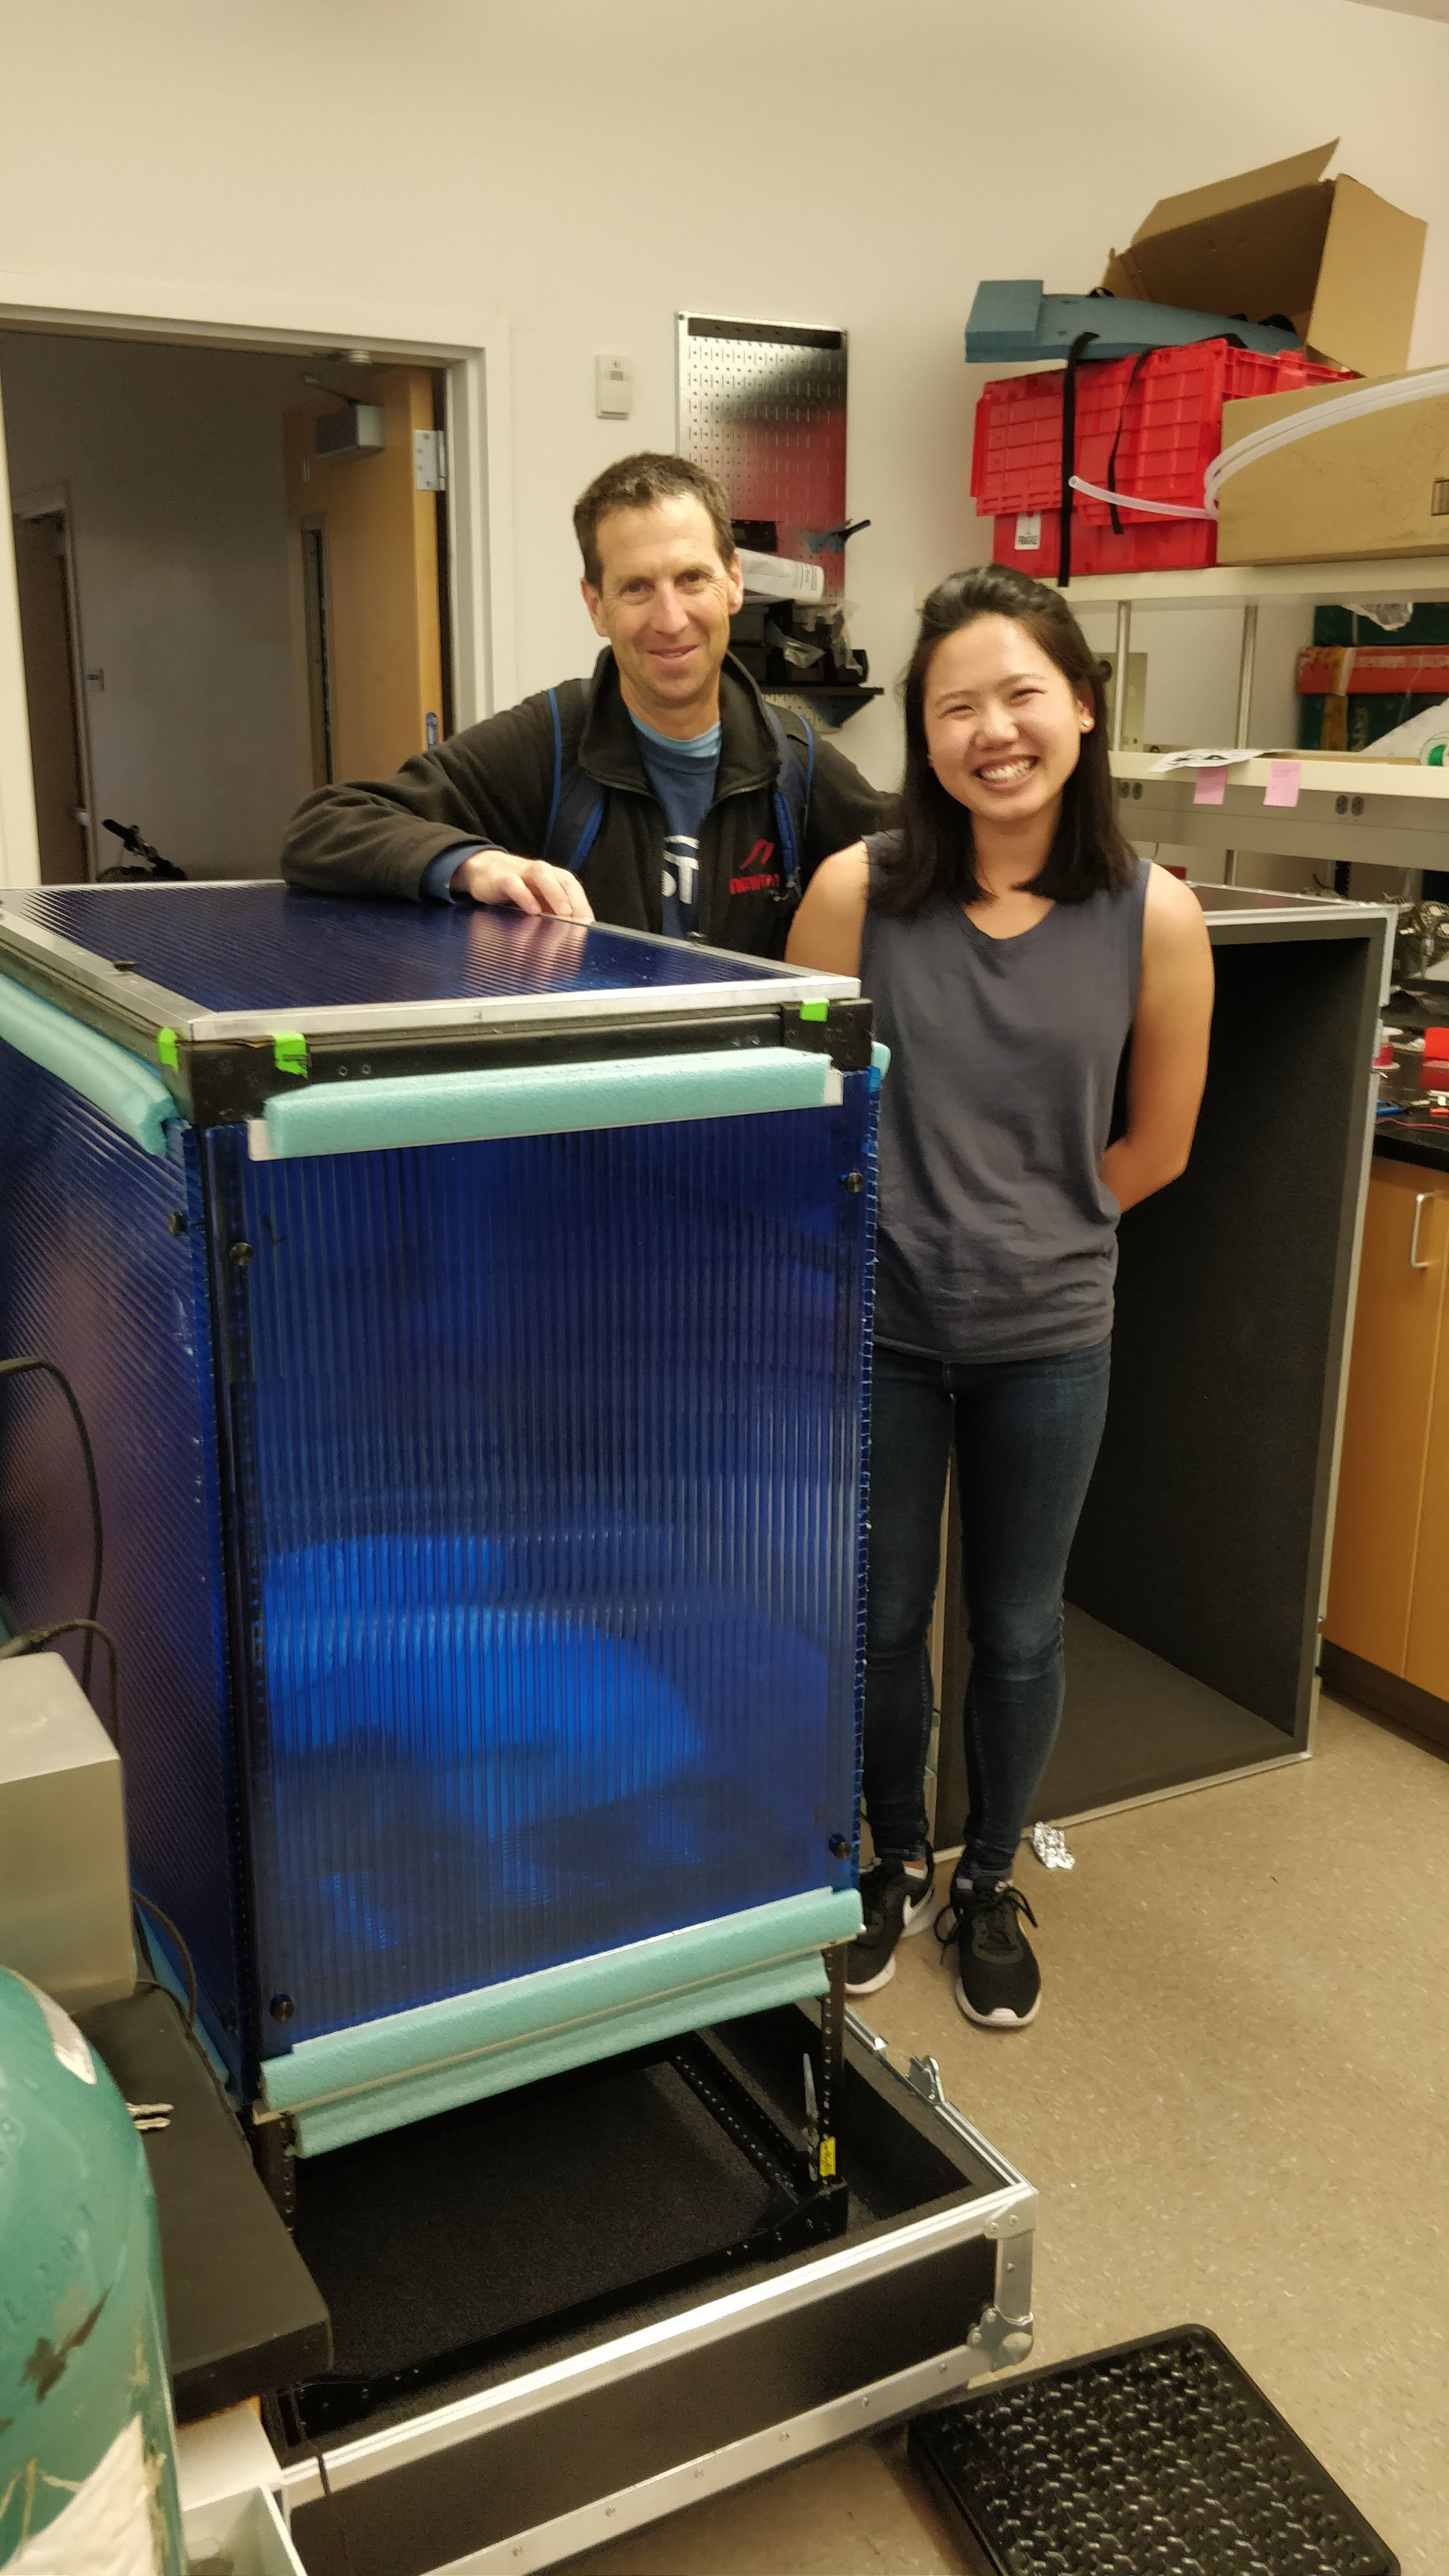 We're so happy because we finished building the whole air sampling system